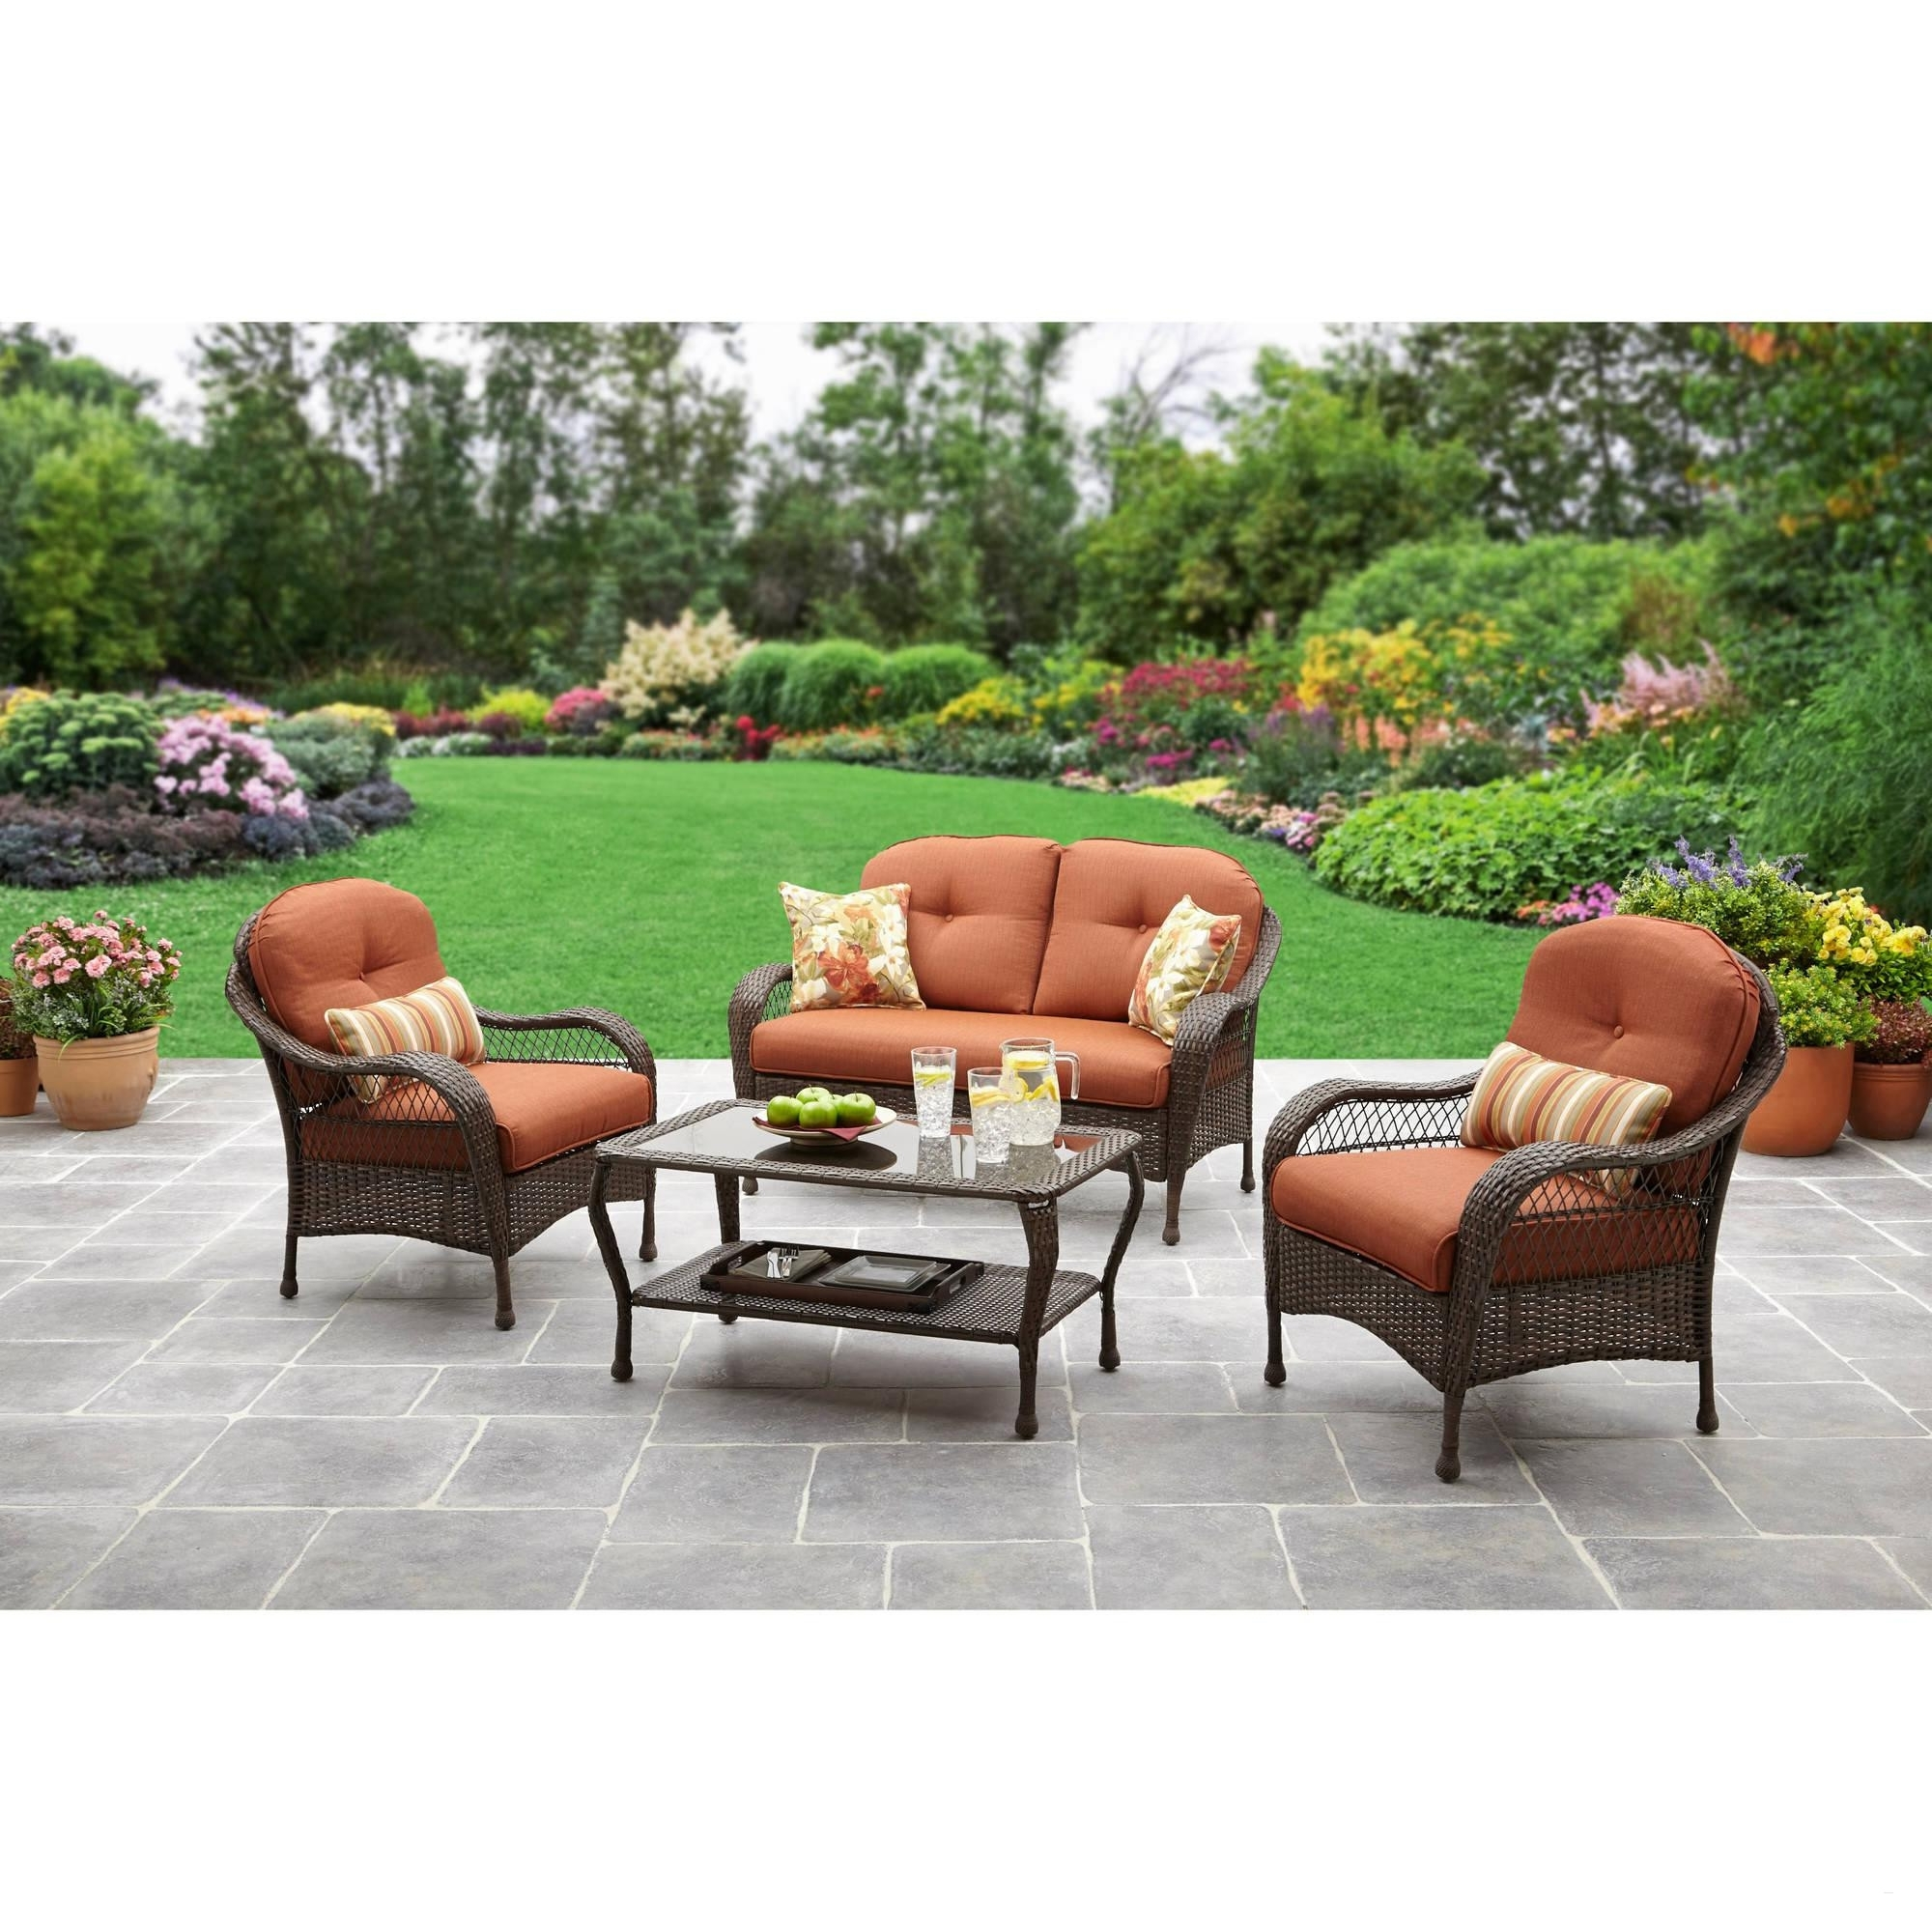 Wonderful Sears Outdoor Cushions – Bomelconsult Inside Most Popular Sears Patio Furniture Conversation Sets (View 11 of 15)